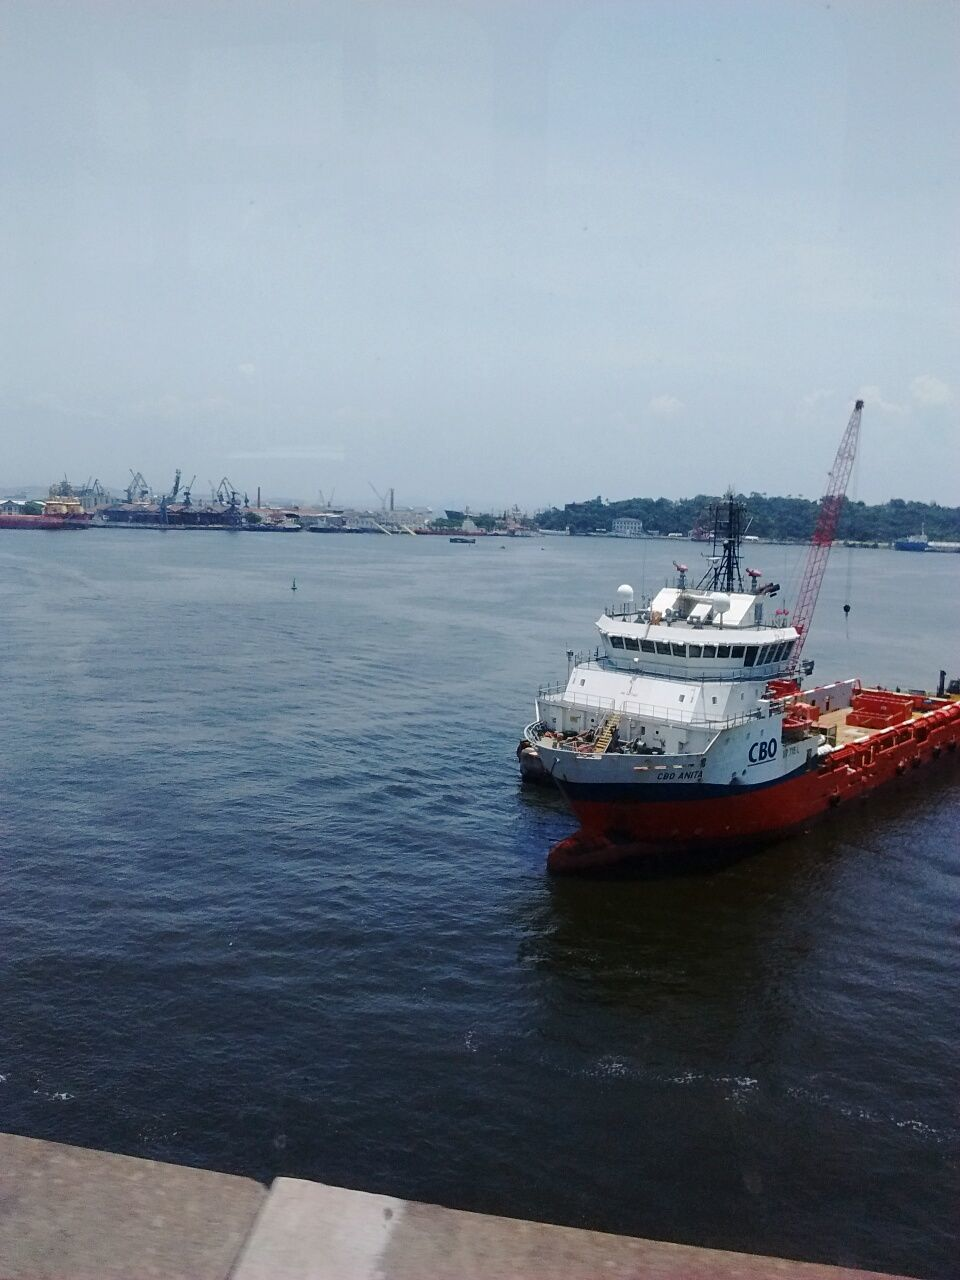 nautical vessel, transportation, mode of transport, water, moored, boat, harbor, sea, no people, ship, outdoors, day, waterfront, nature, sky, freight transportation, ferry, commercial dock, mast, sailing